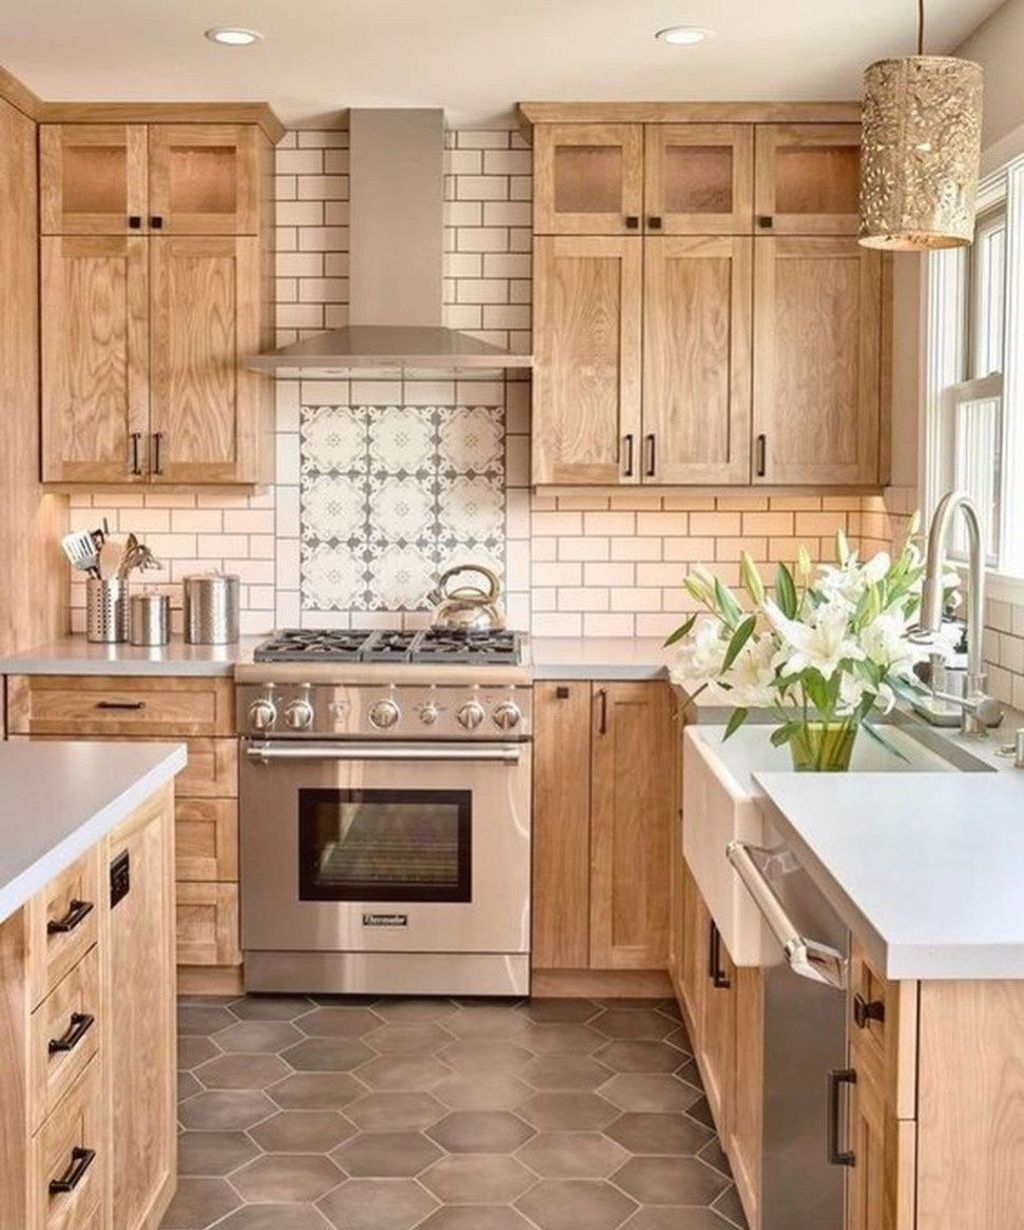 Cool Diy Kitchen Design Ideas You Will Definitely Want To Keep 20